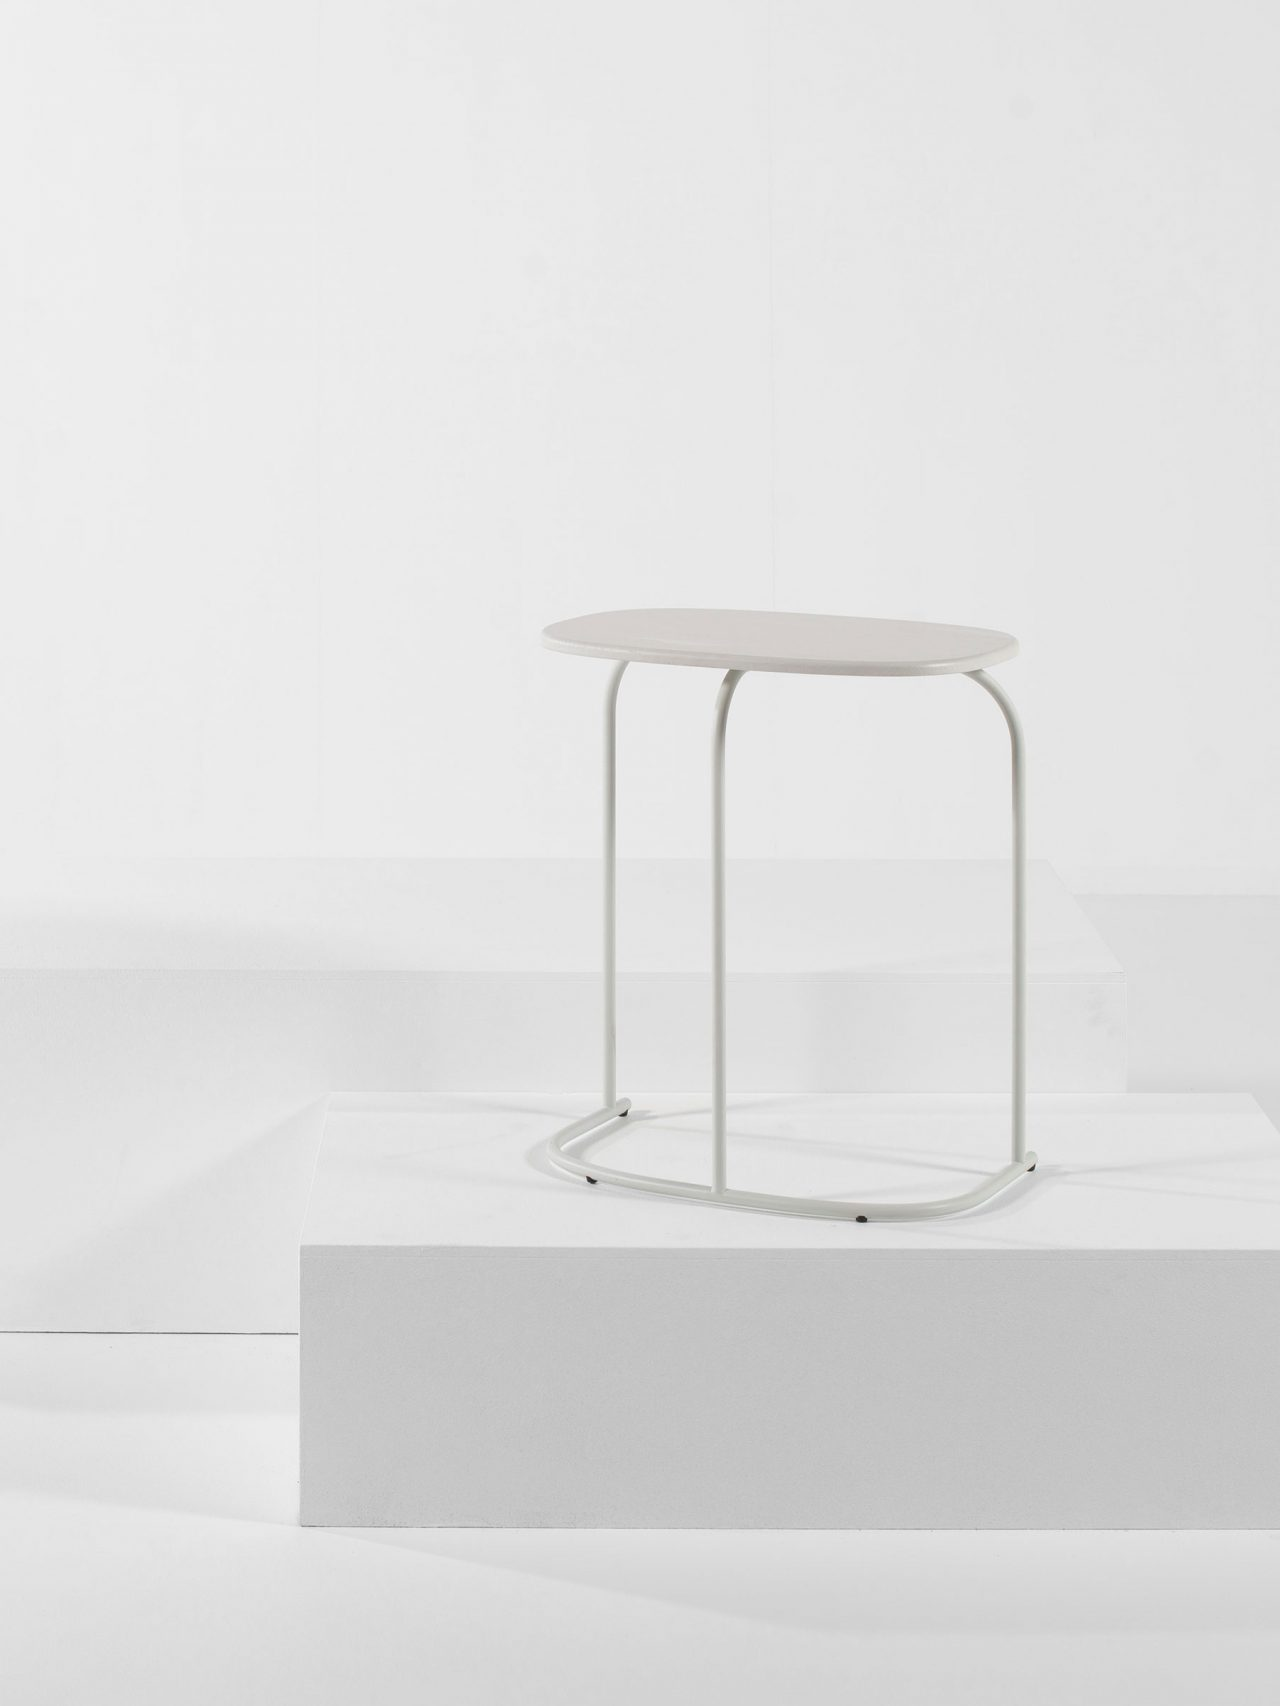 Productive_side_tables_2_2400x3200